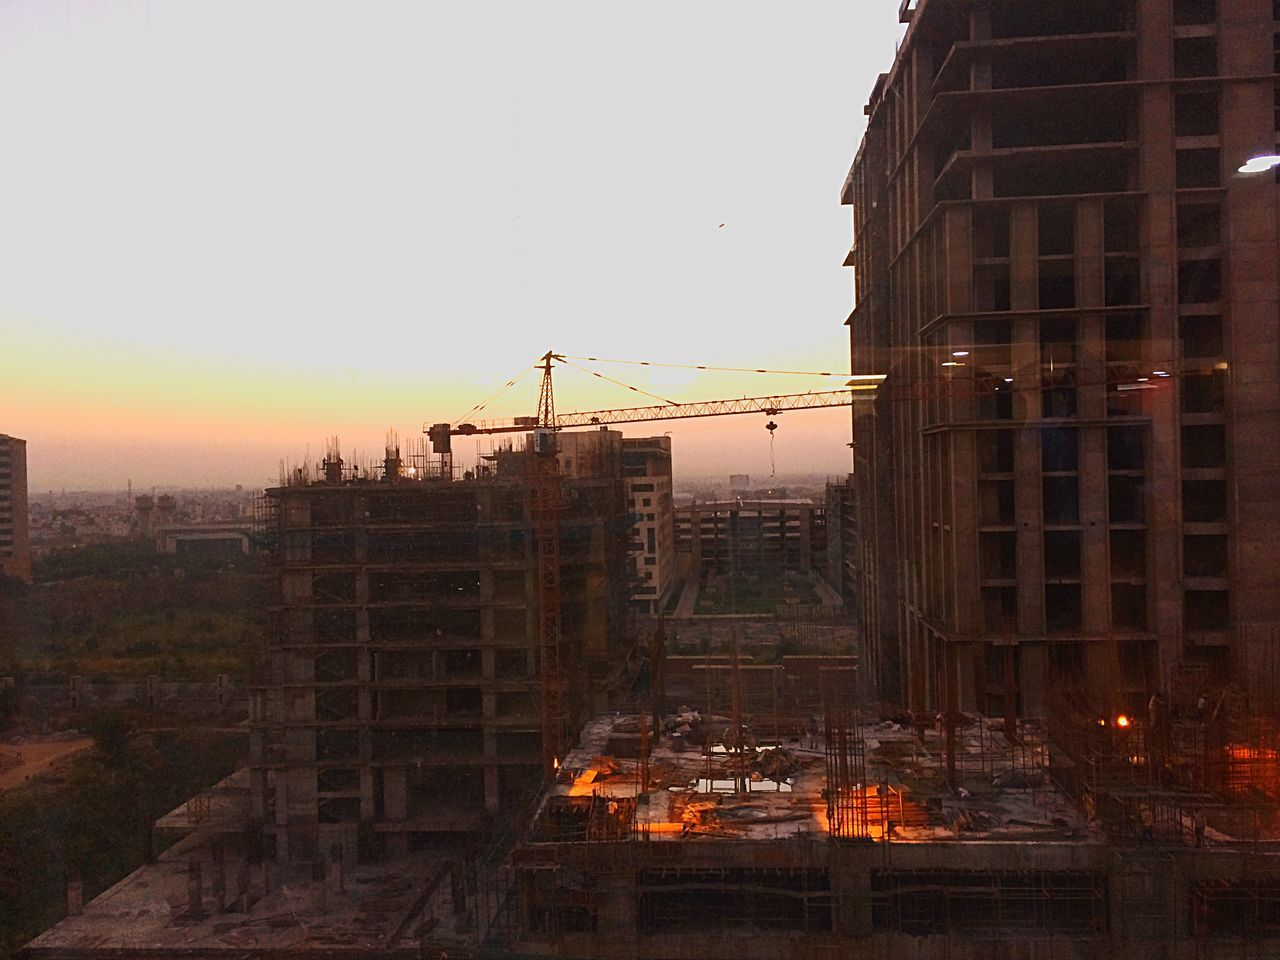 Building Exterior Architecture Built Structure City Outdoors Sky Sunset Photography Building Construction Site Construction India